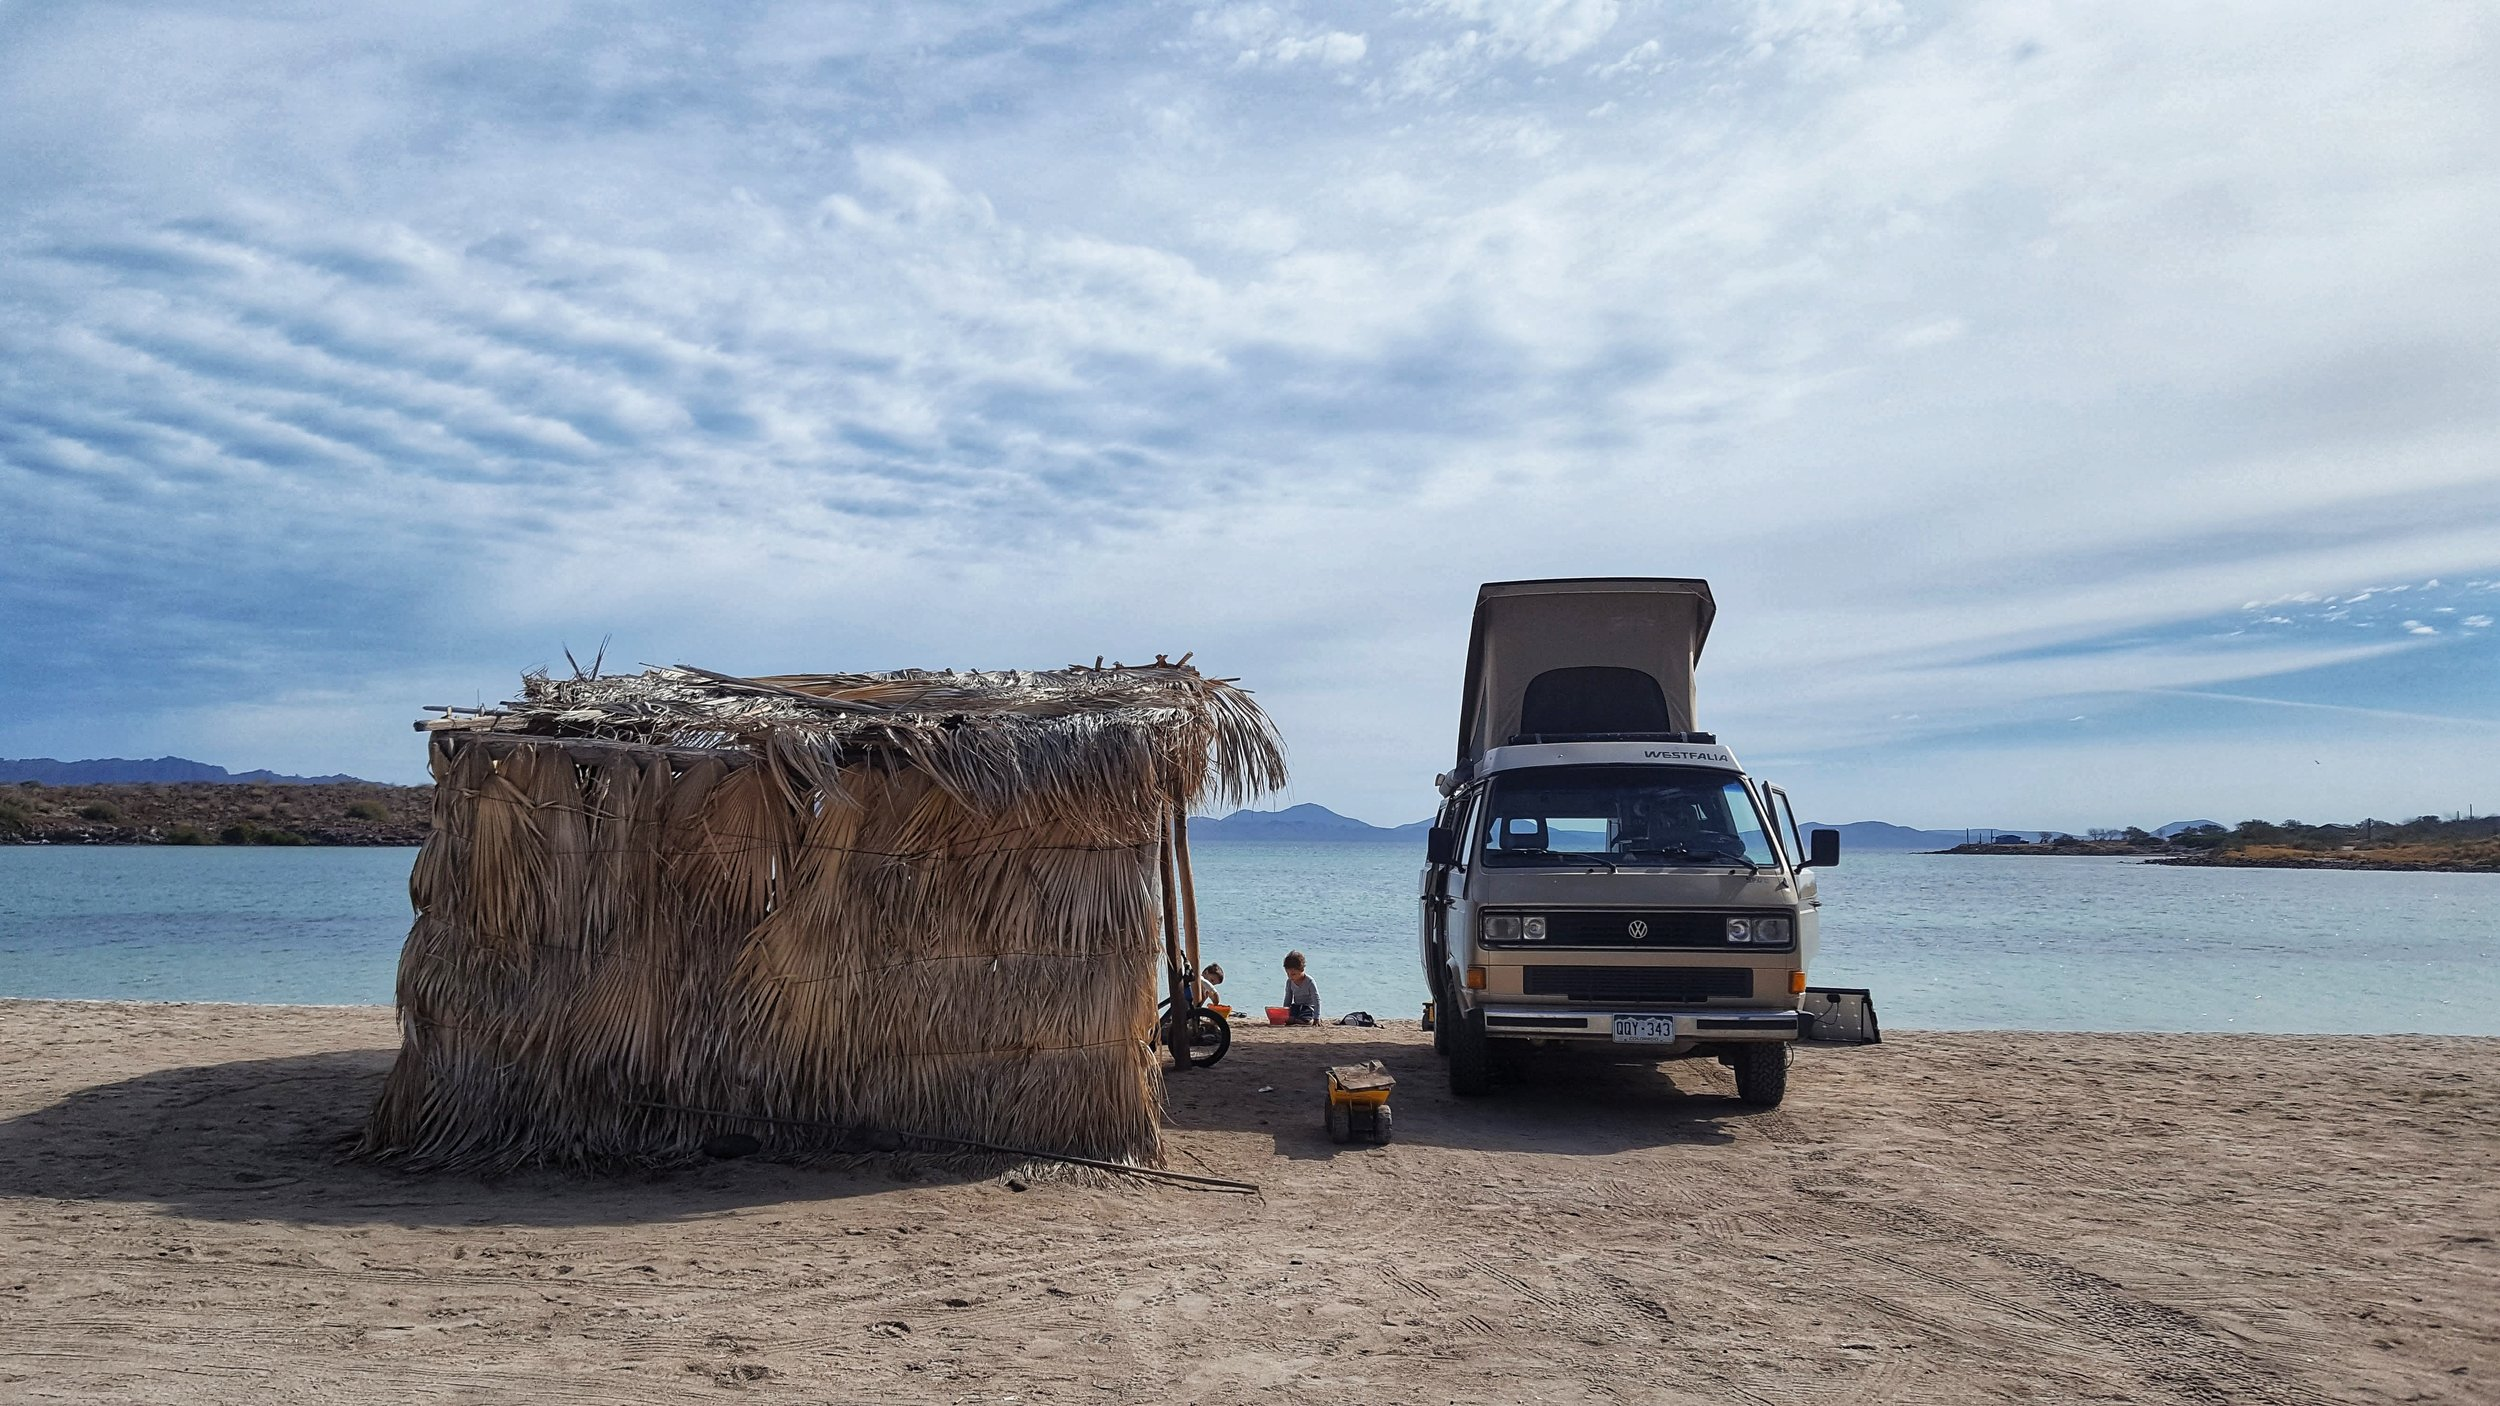 Often in Baja, campers can count on enjoying a palapa (or palm leaf structure) alongside their camper. Great for shade, storage, and extra outdoor space!